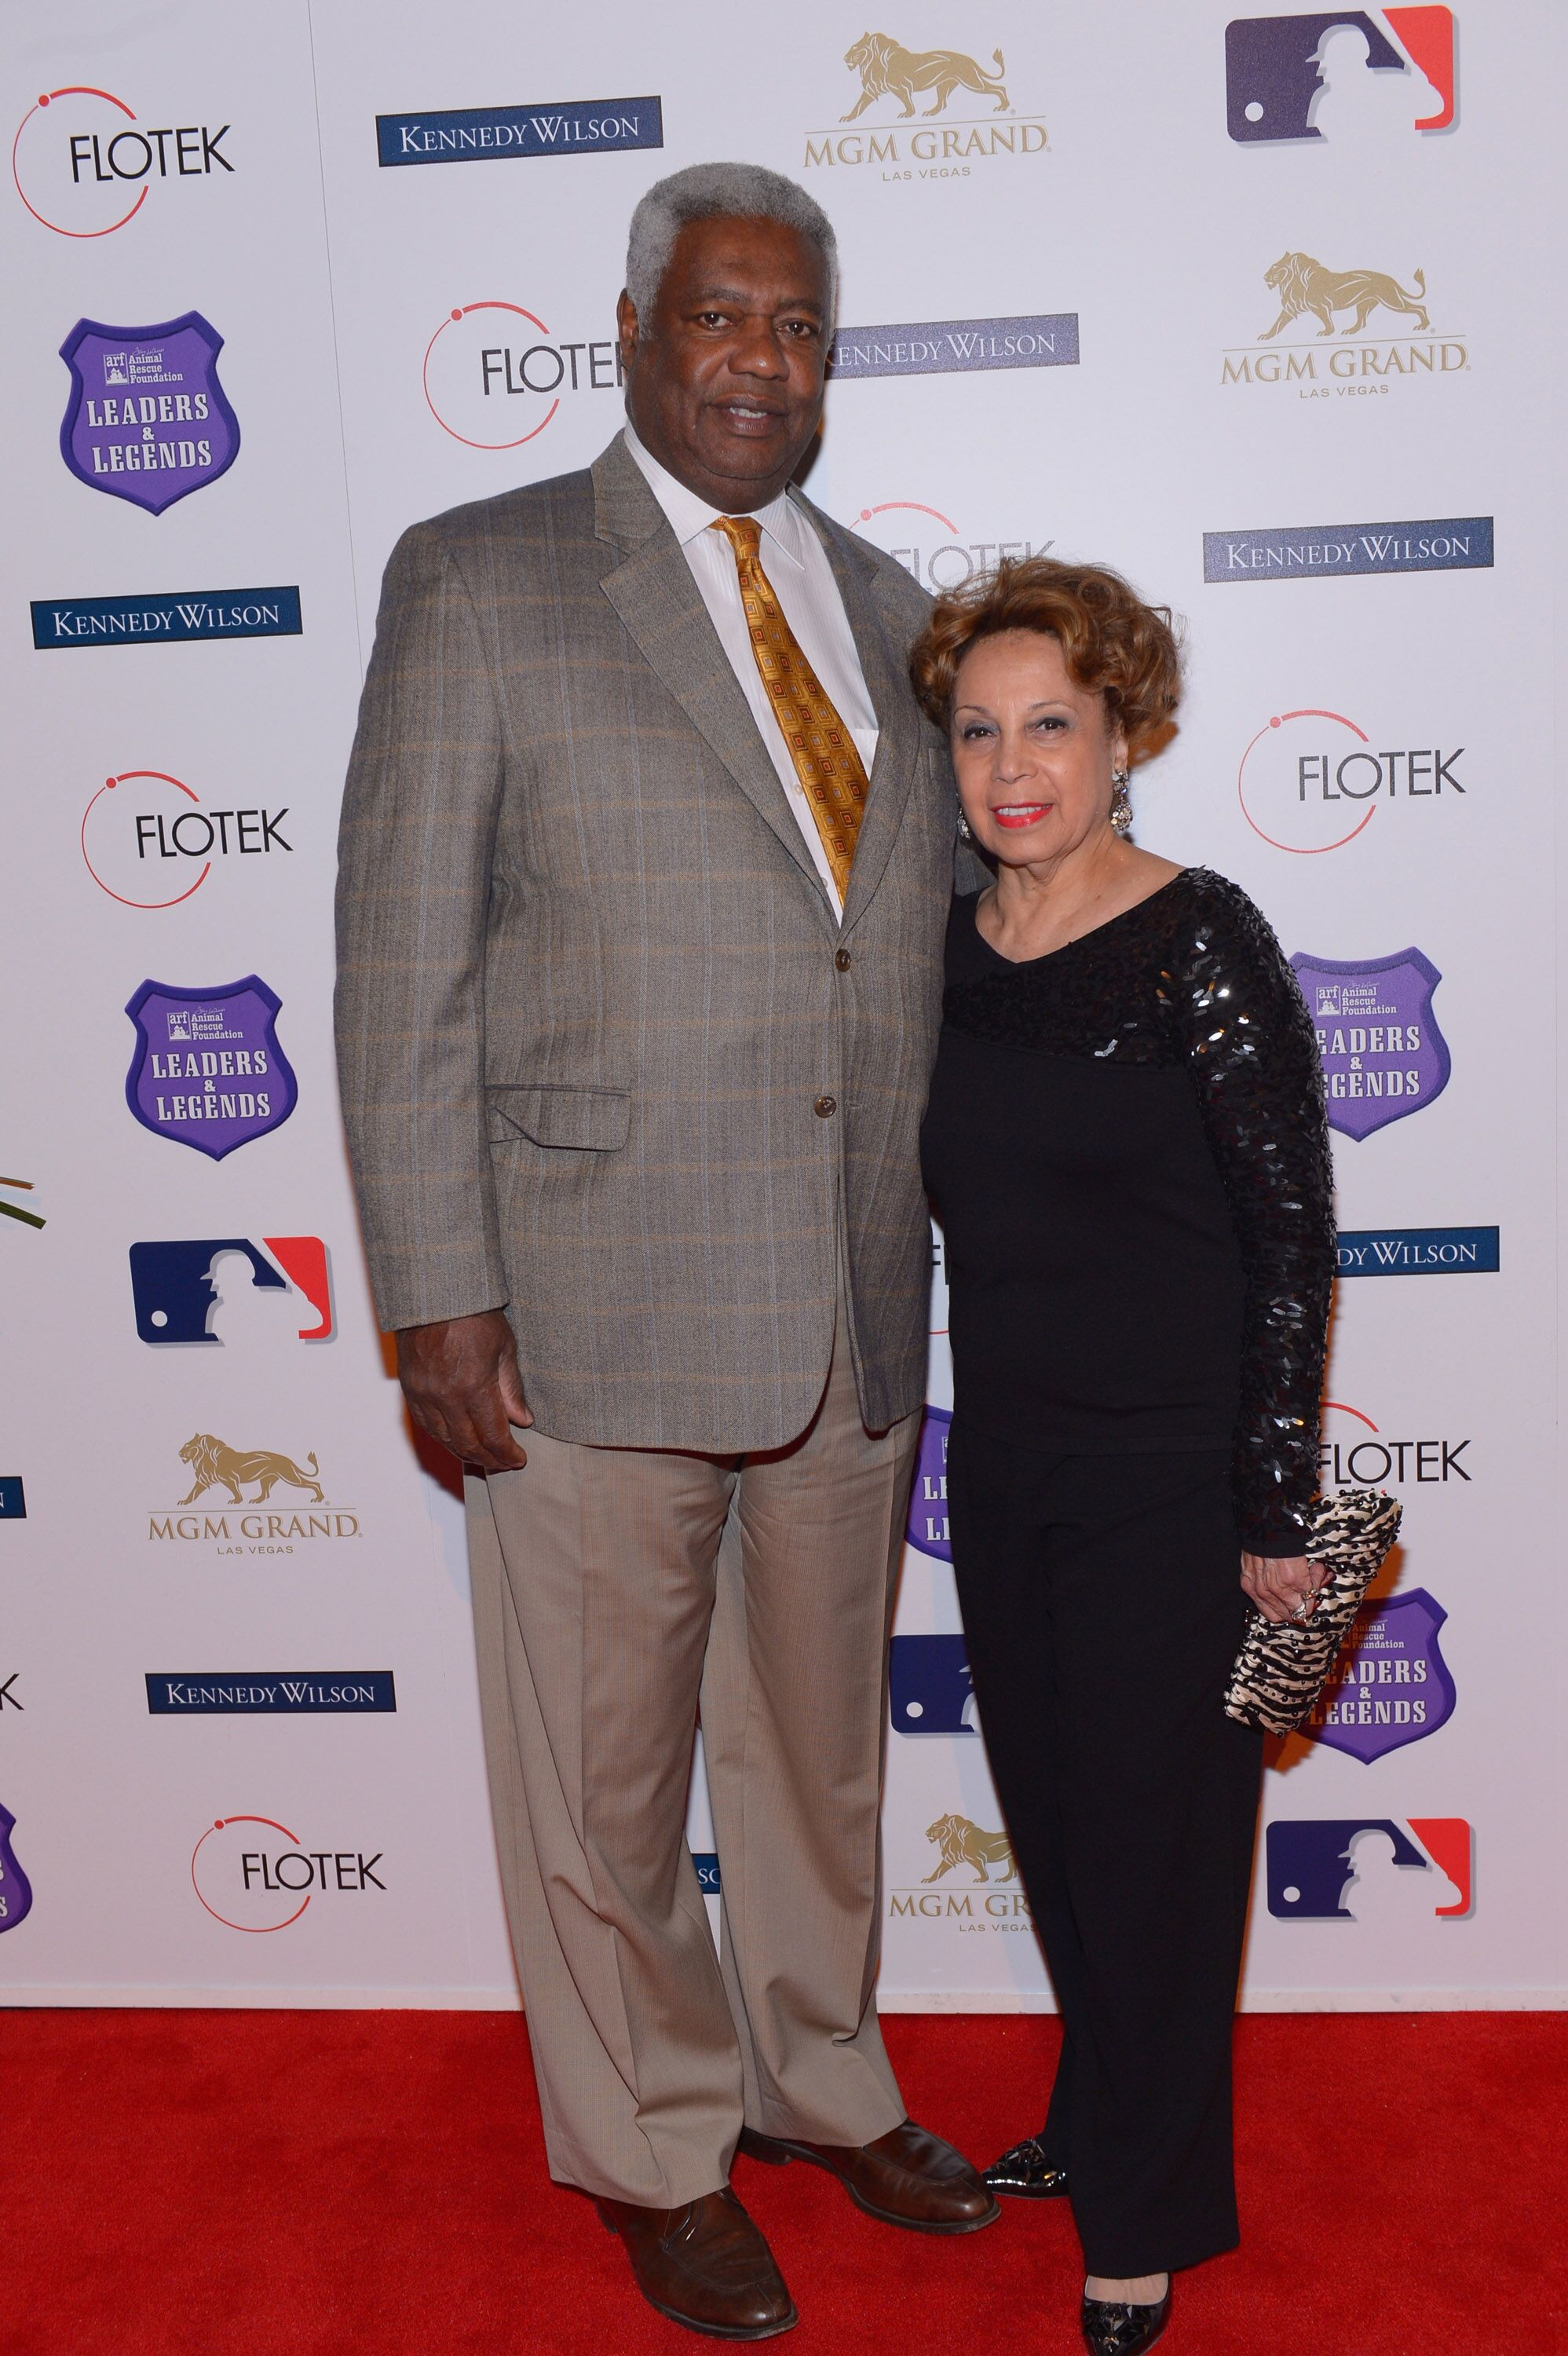 Oscar Robertson and wife Yvonne Crittenden at Tony La Russa's 2nd annual Leaders & Legends gala for the Animal Rescue Foundation on November 22, 2013 | Photo: Getty Images